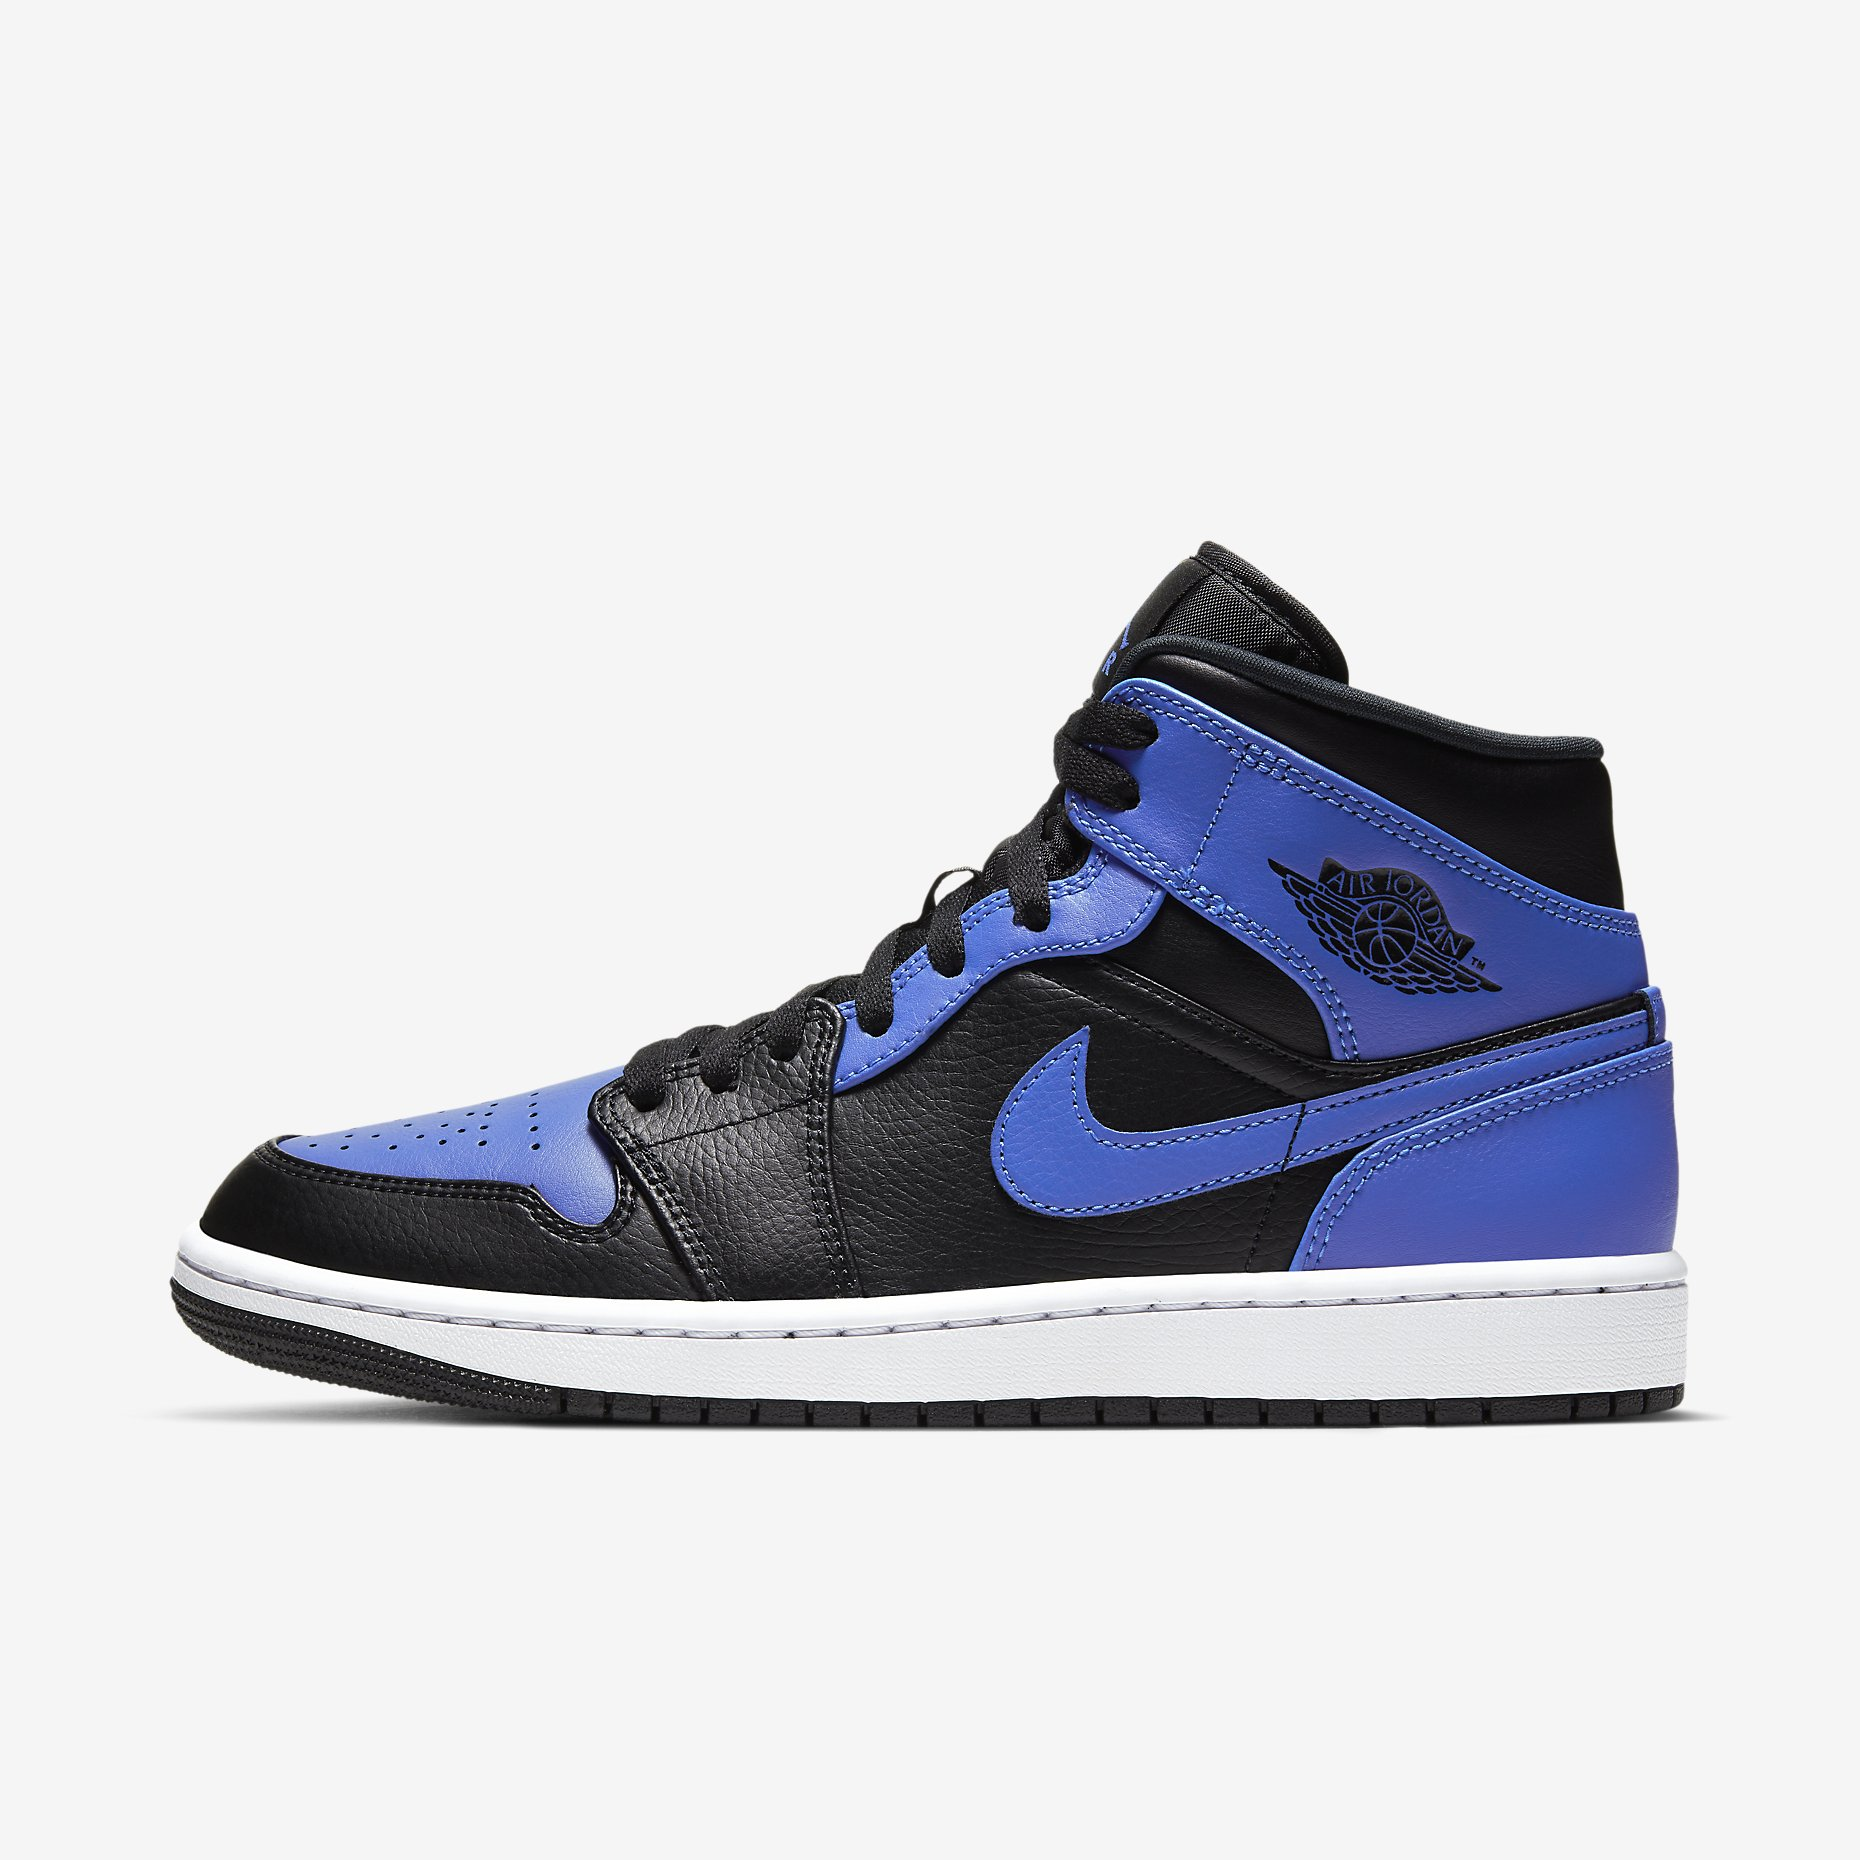 Air Jordan 1 Mid 'Black/Hyper Royal'}